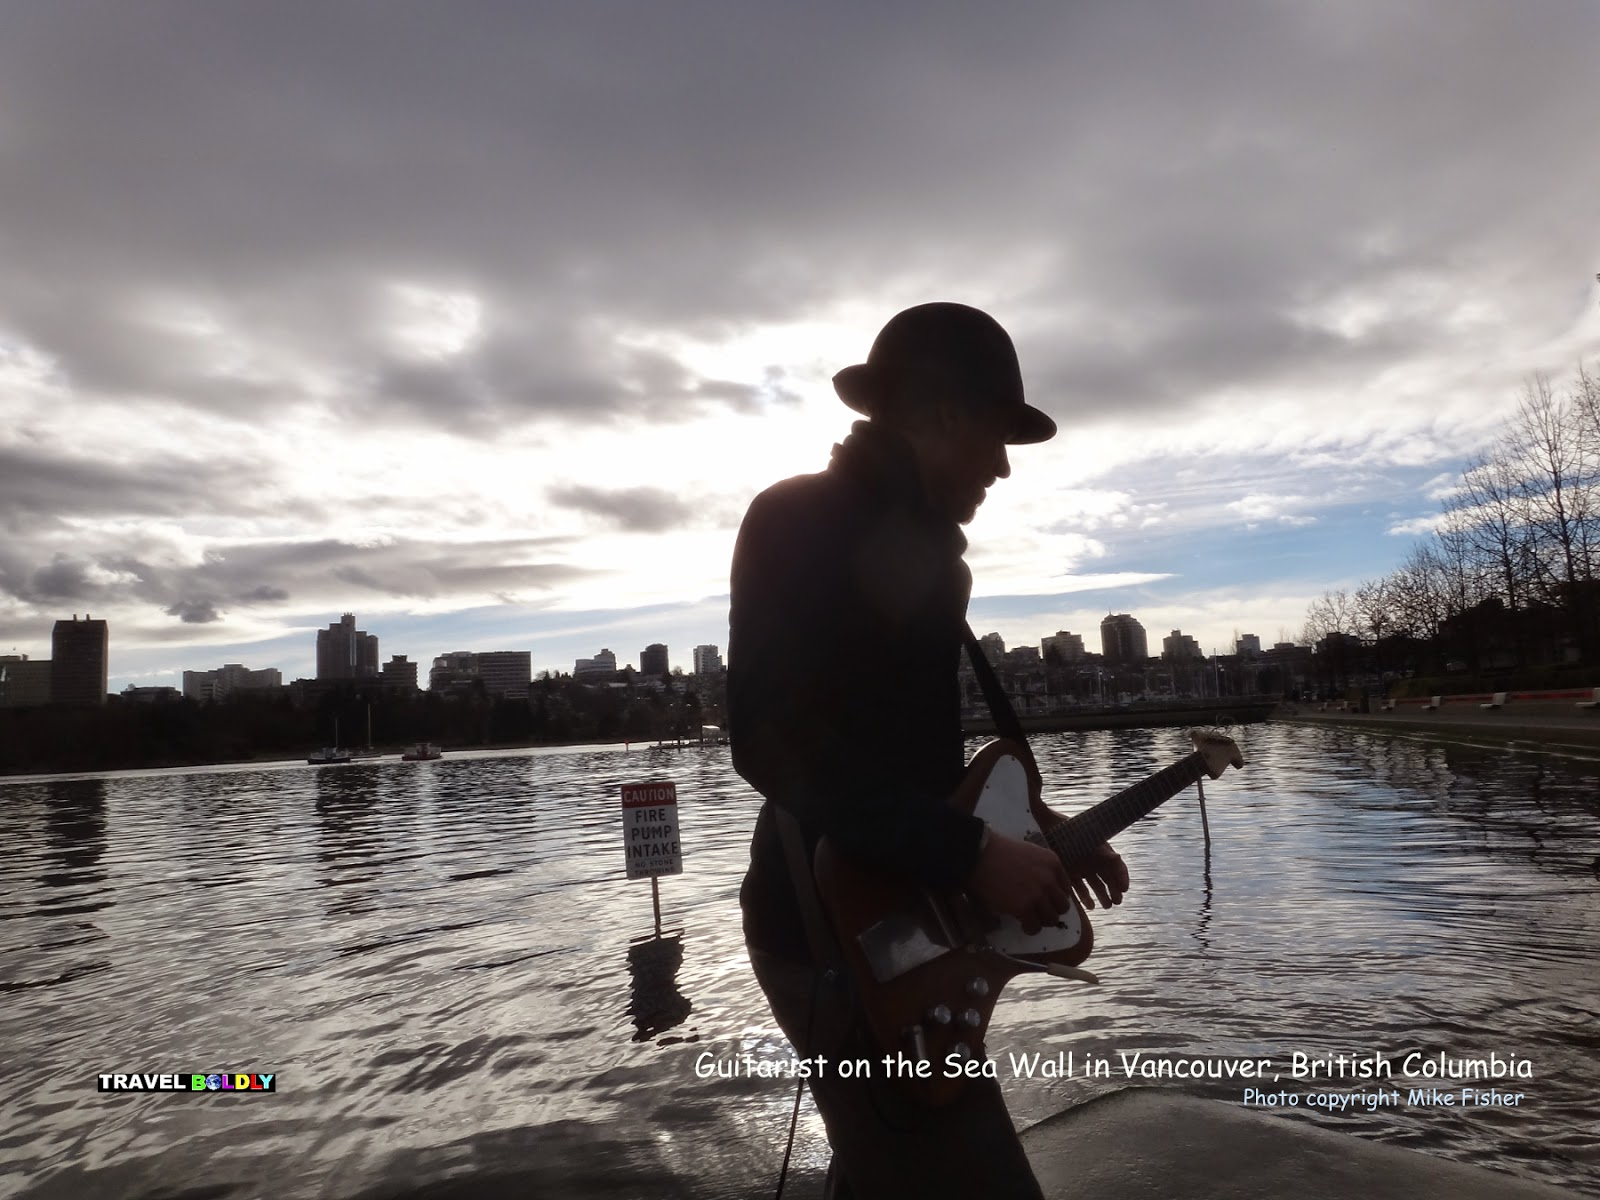 Guitarist Peter Jack Rainbird on the Vancouver waterfront - Vancouver, British Columbia - Photo Mike Fisher for Travel Boldly